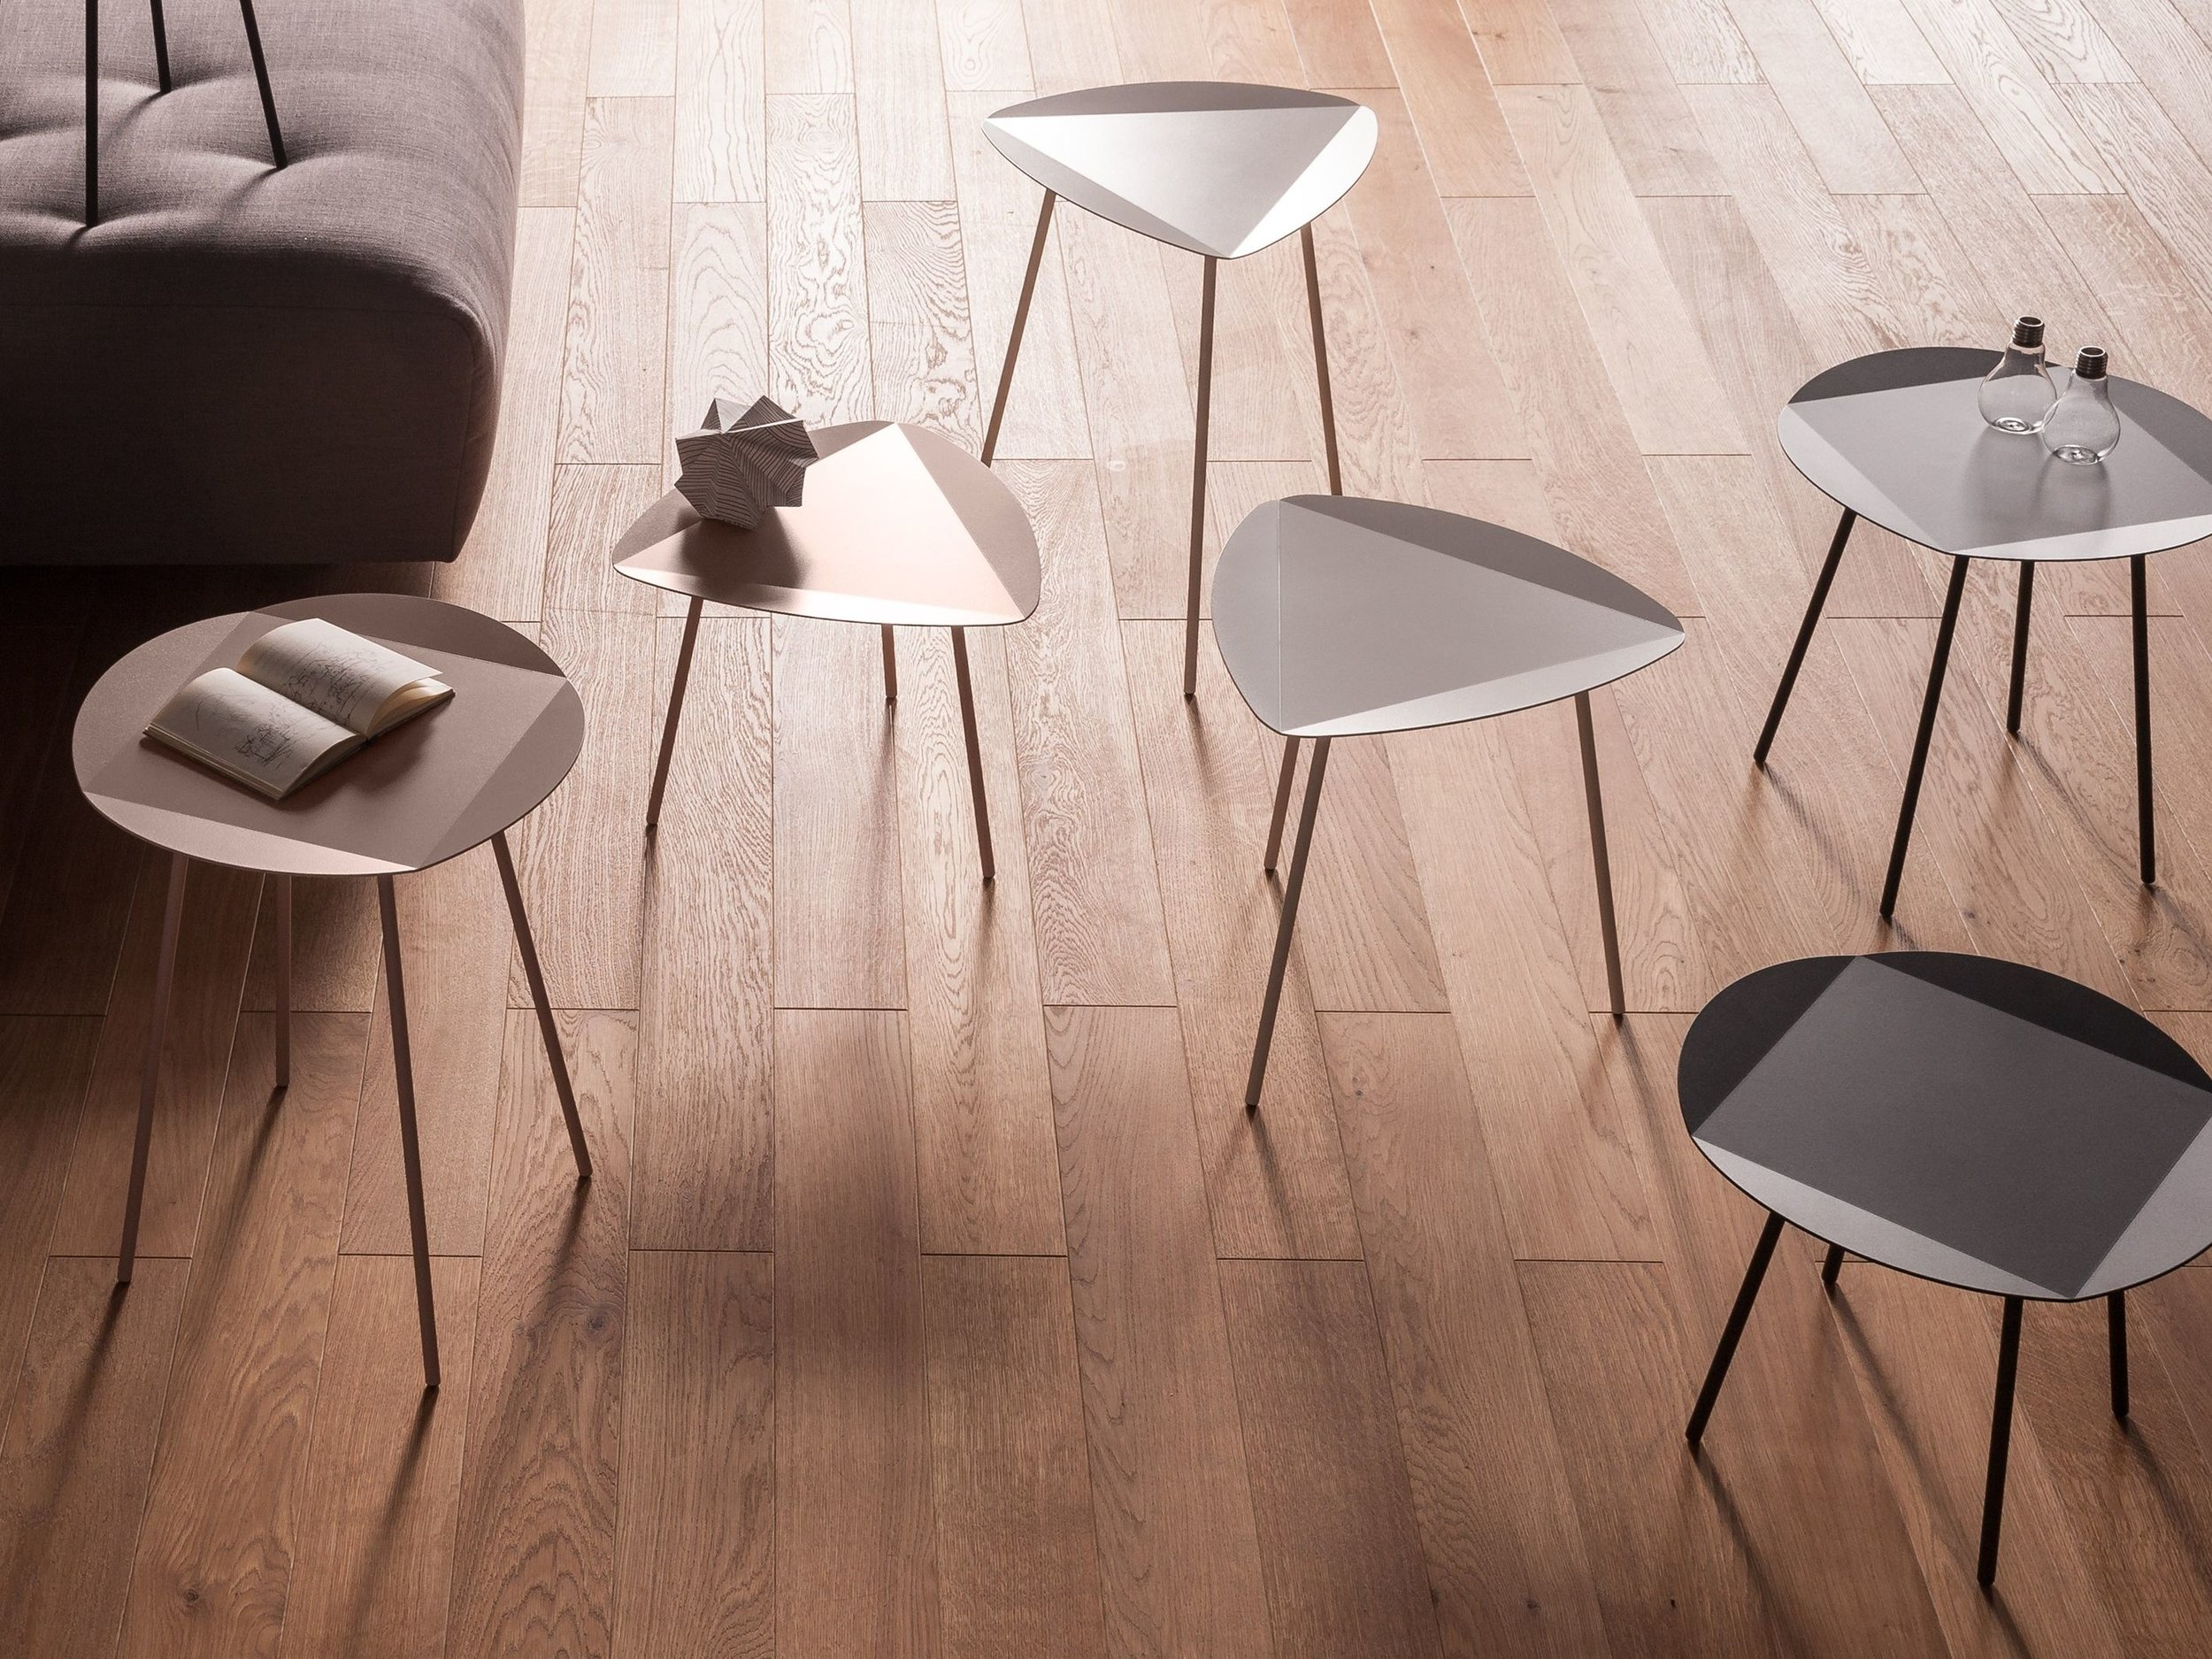 LEITO-Round-coffee-table-joval-238727-reld51d4760.jpg